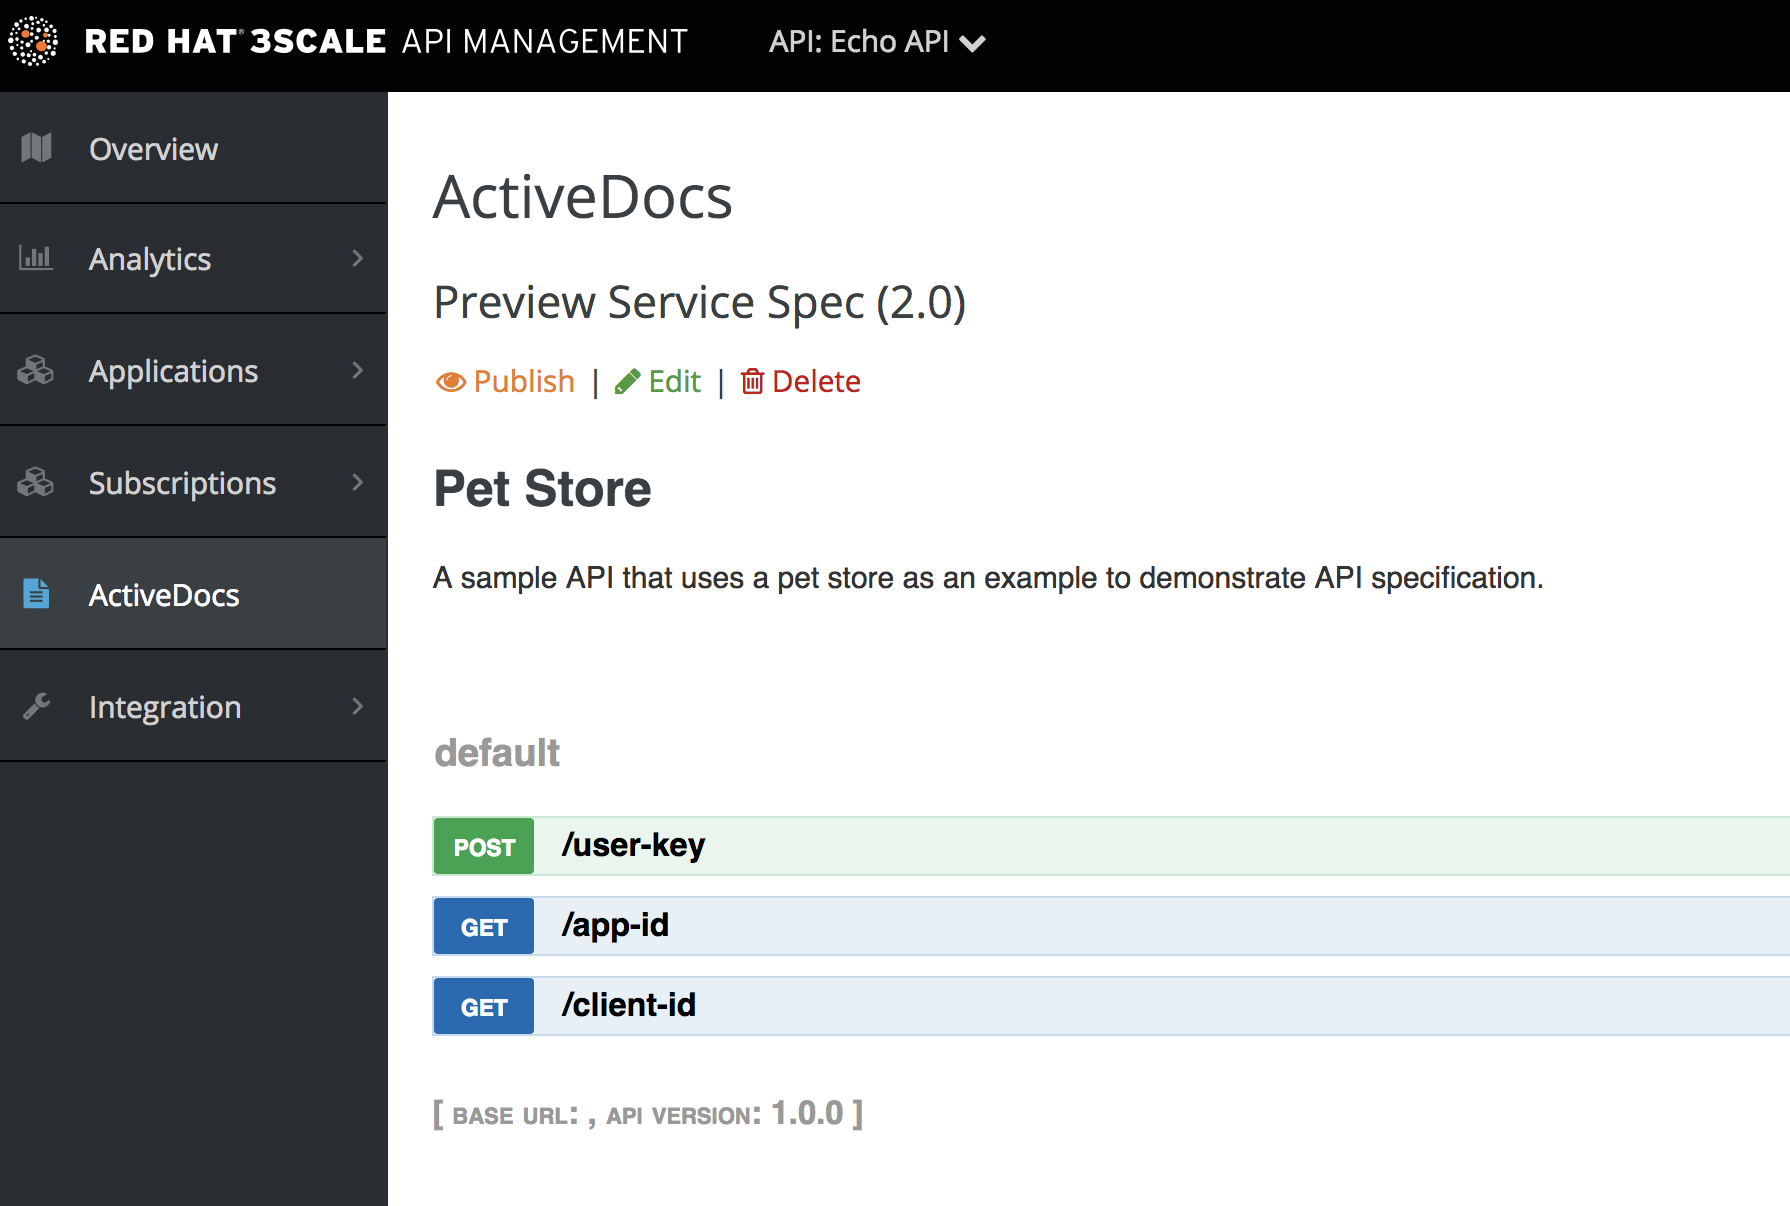 ActiveDocs new specification view